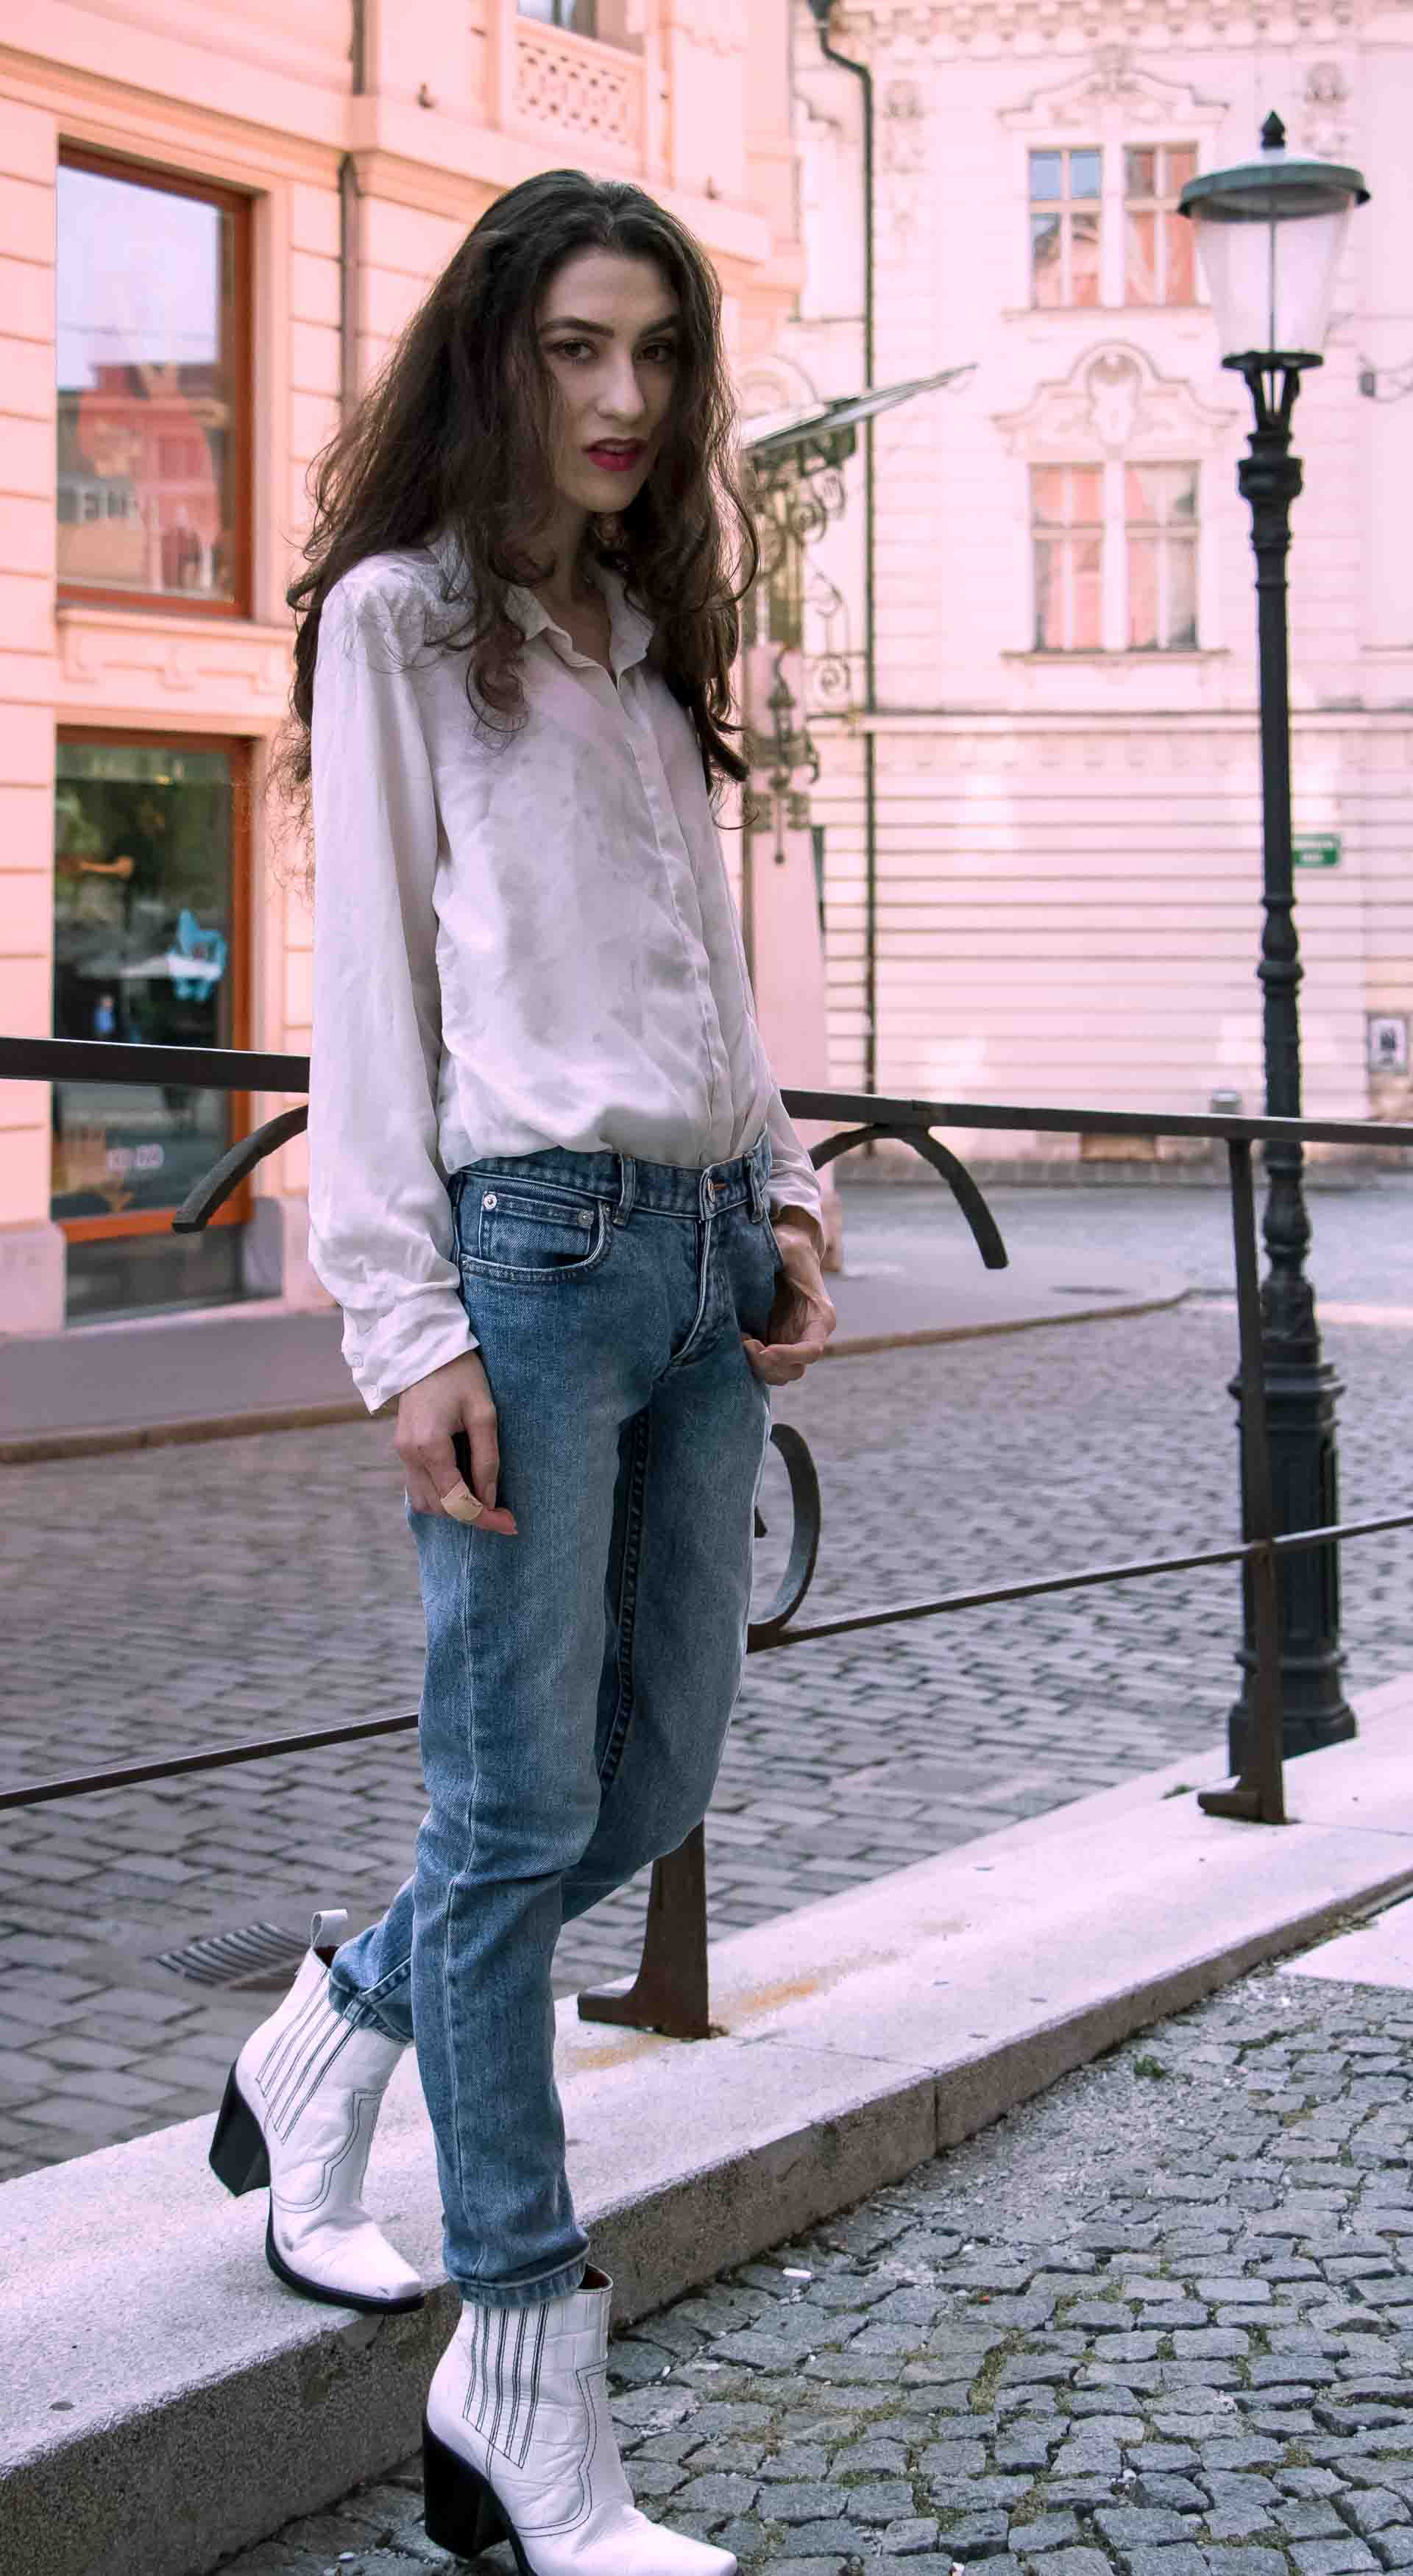 Beautiful Slovenian Fashion Blogger Veronika Lipar of Brunette from Wall dressed in white silk shirt from Sandro Paris, white and black polka dot cami slip top, A.P.C. light blue jeans, white Ganni Western boots, chain strap shoulder bag walking on the street